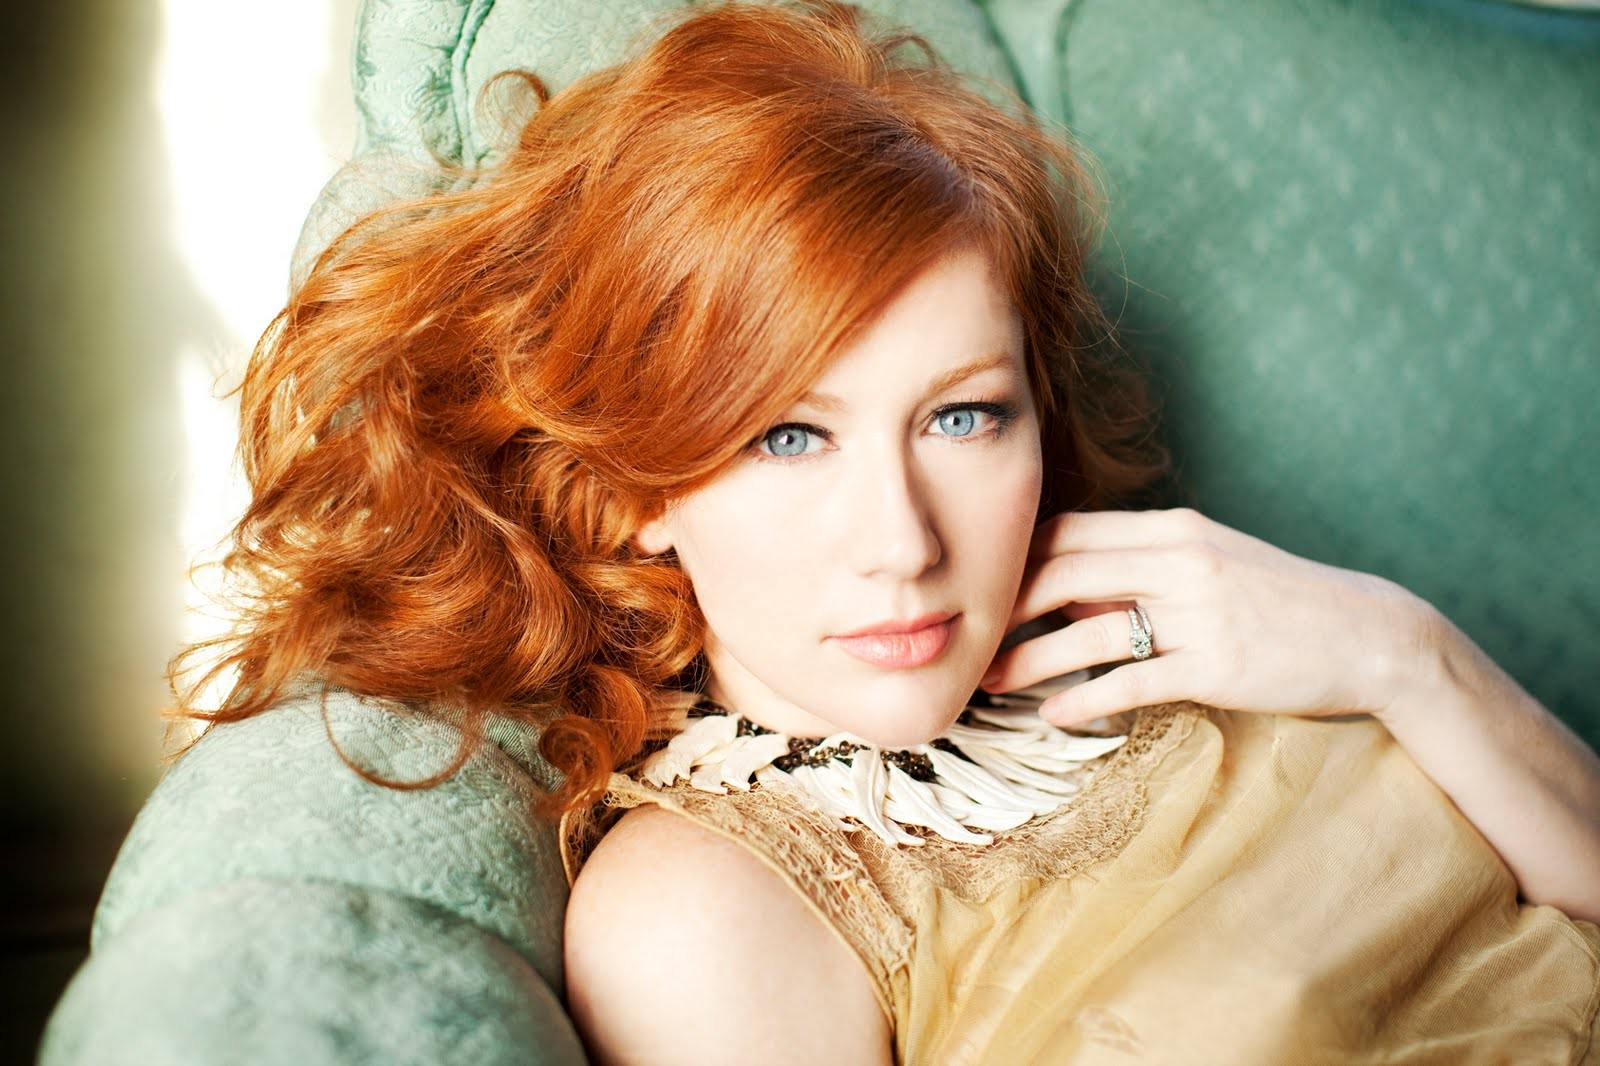 woman redheads Allison Moorer HD Wallpaper